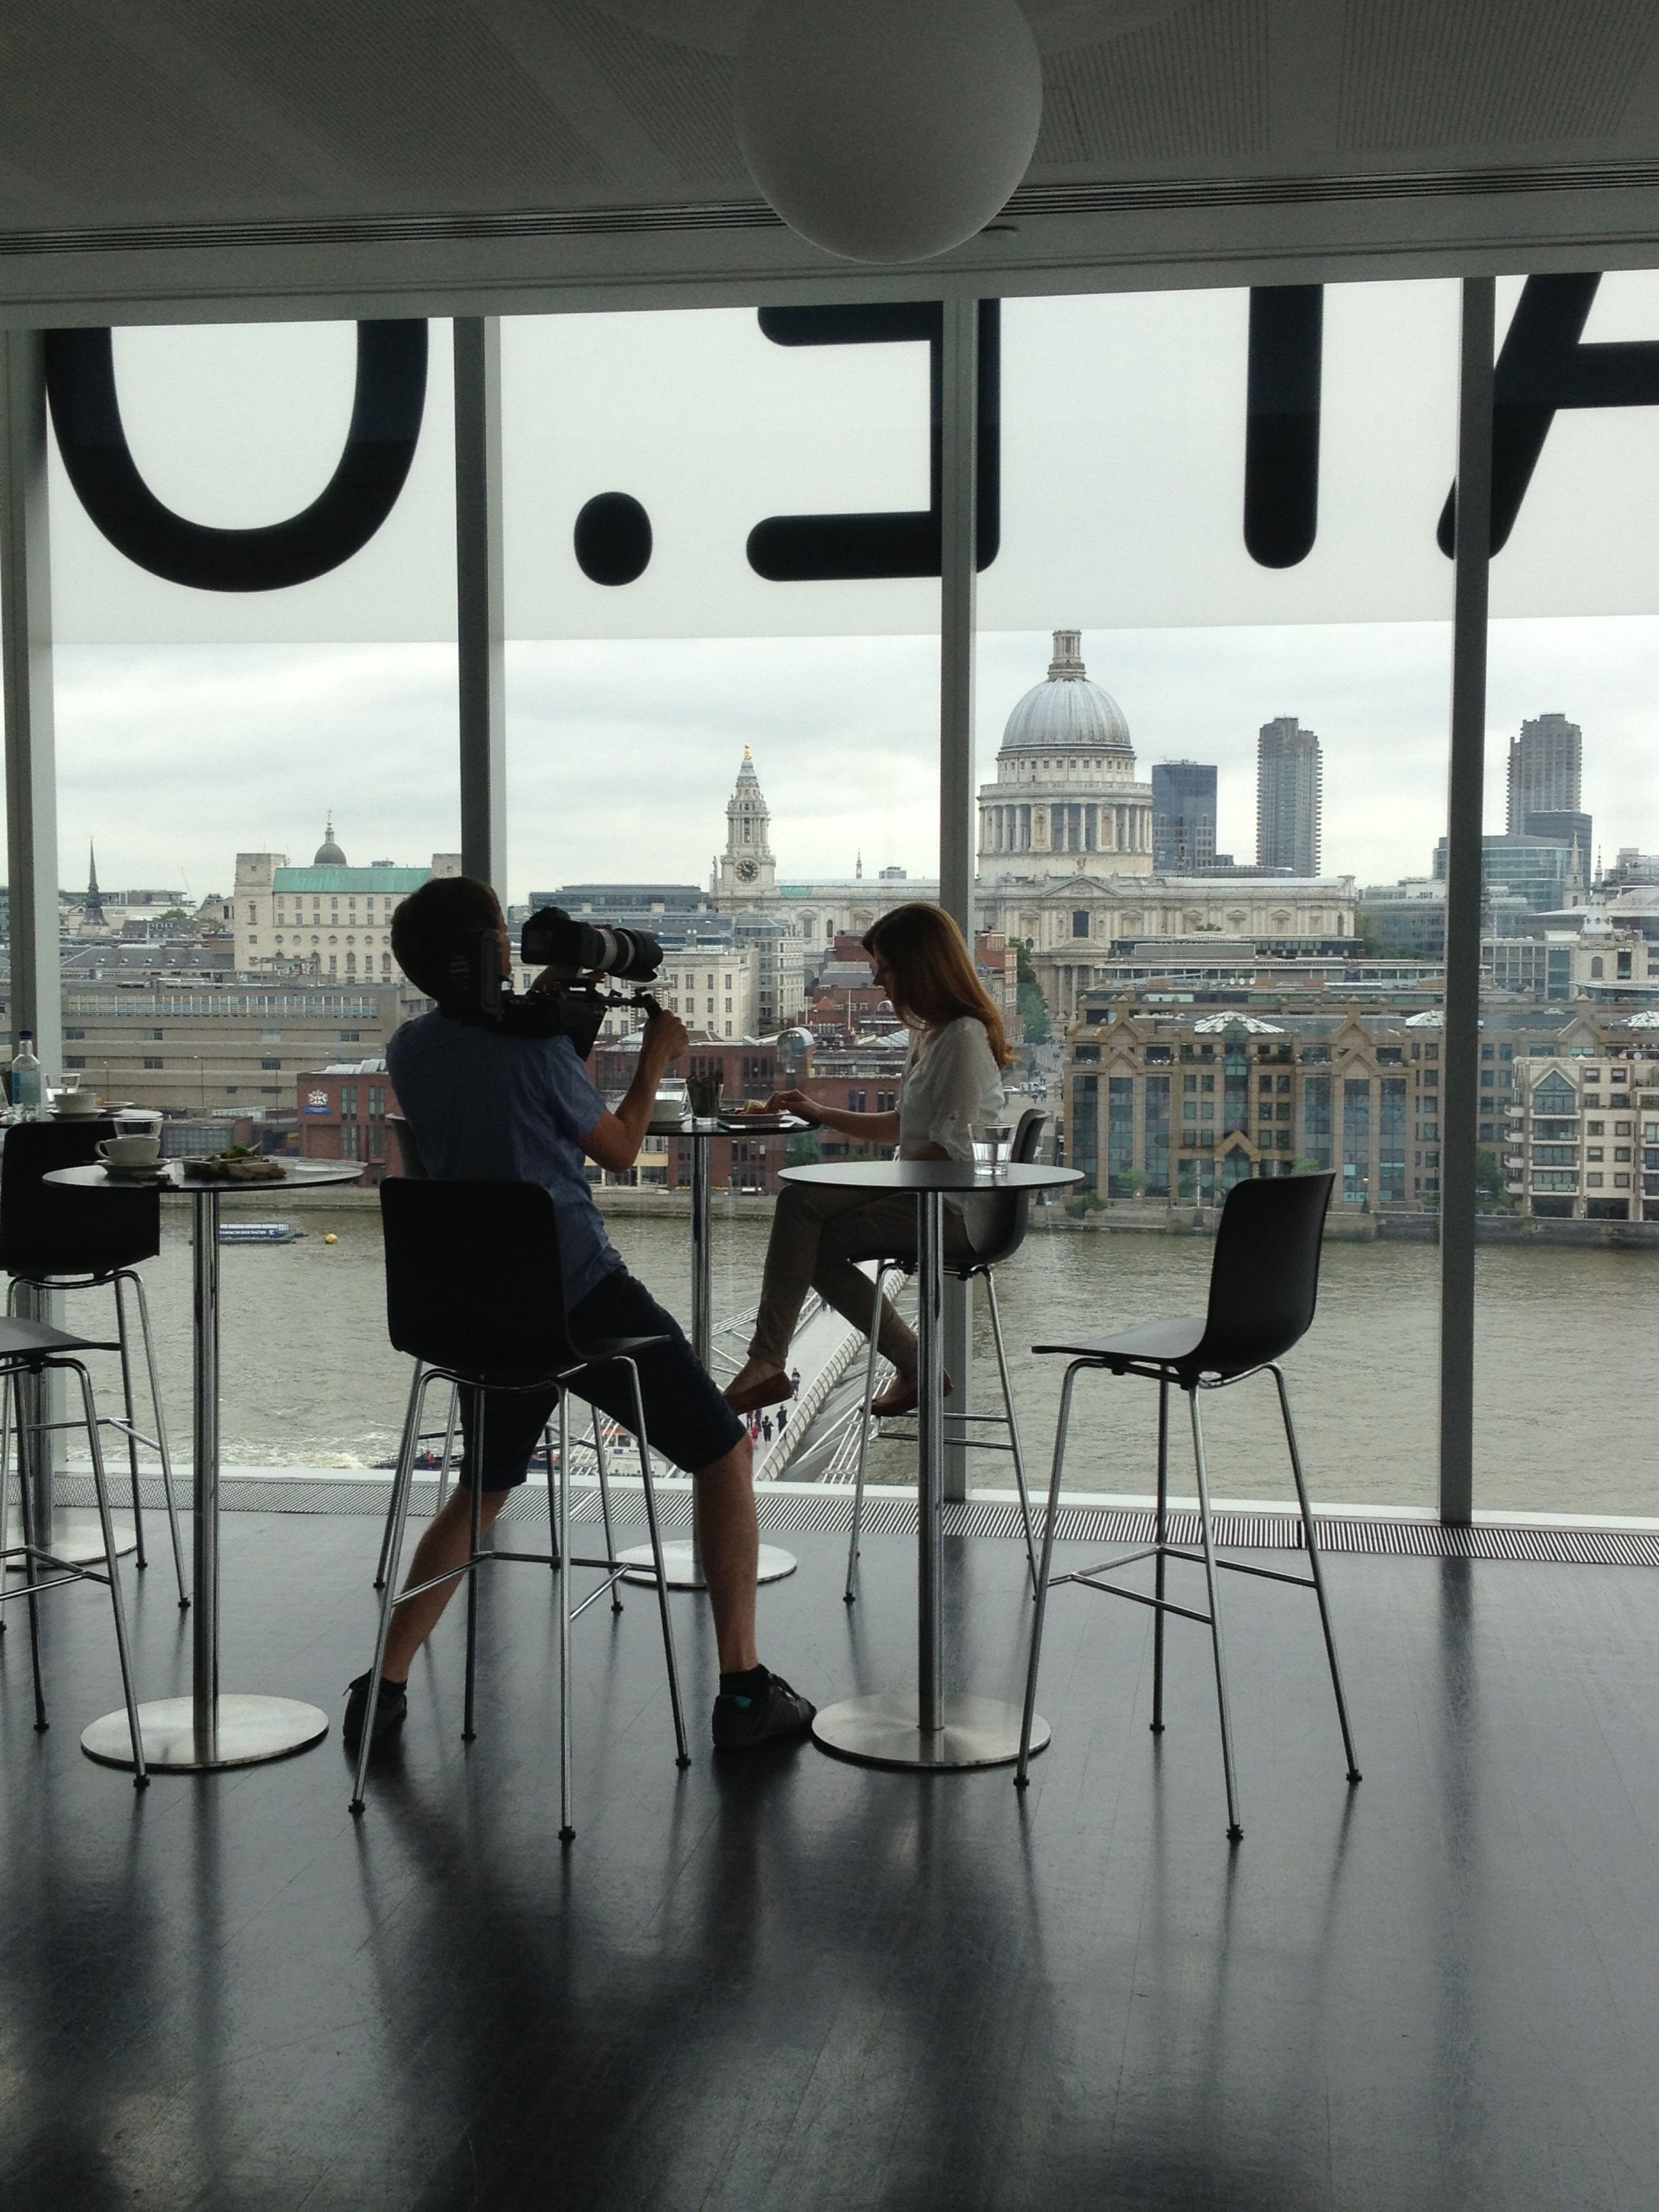 In The Tate Modern Cafe Can T Think Of A Better Place For An Amazing Video Shoot You Can See The Shot Of St Modern Photoshoot Photoshoot London Modern Cafe